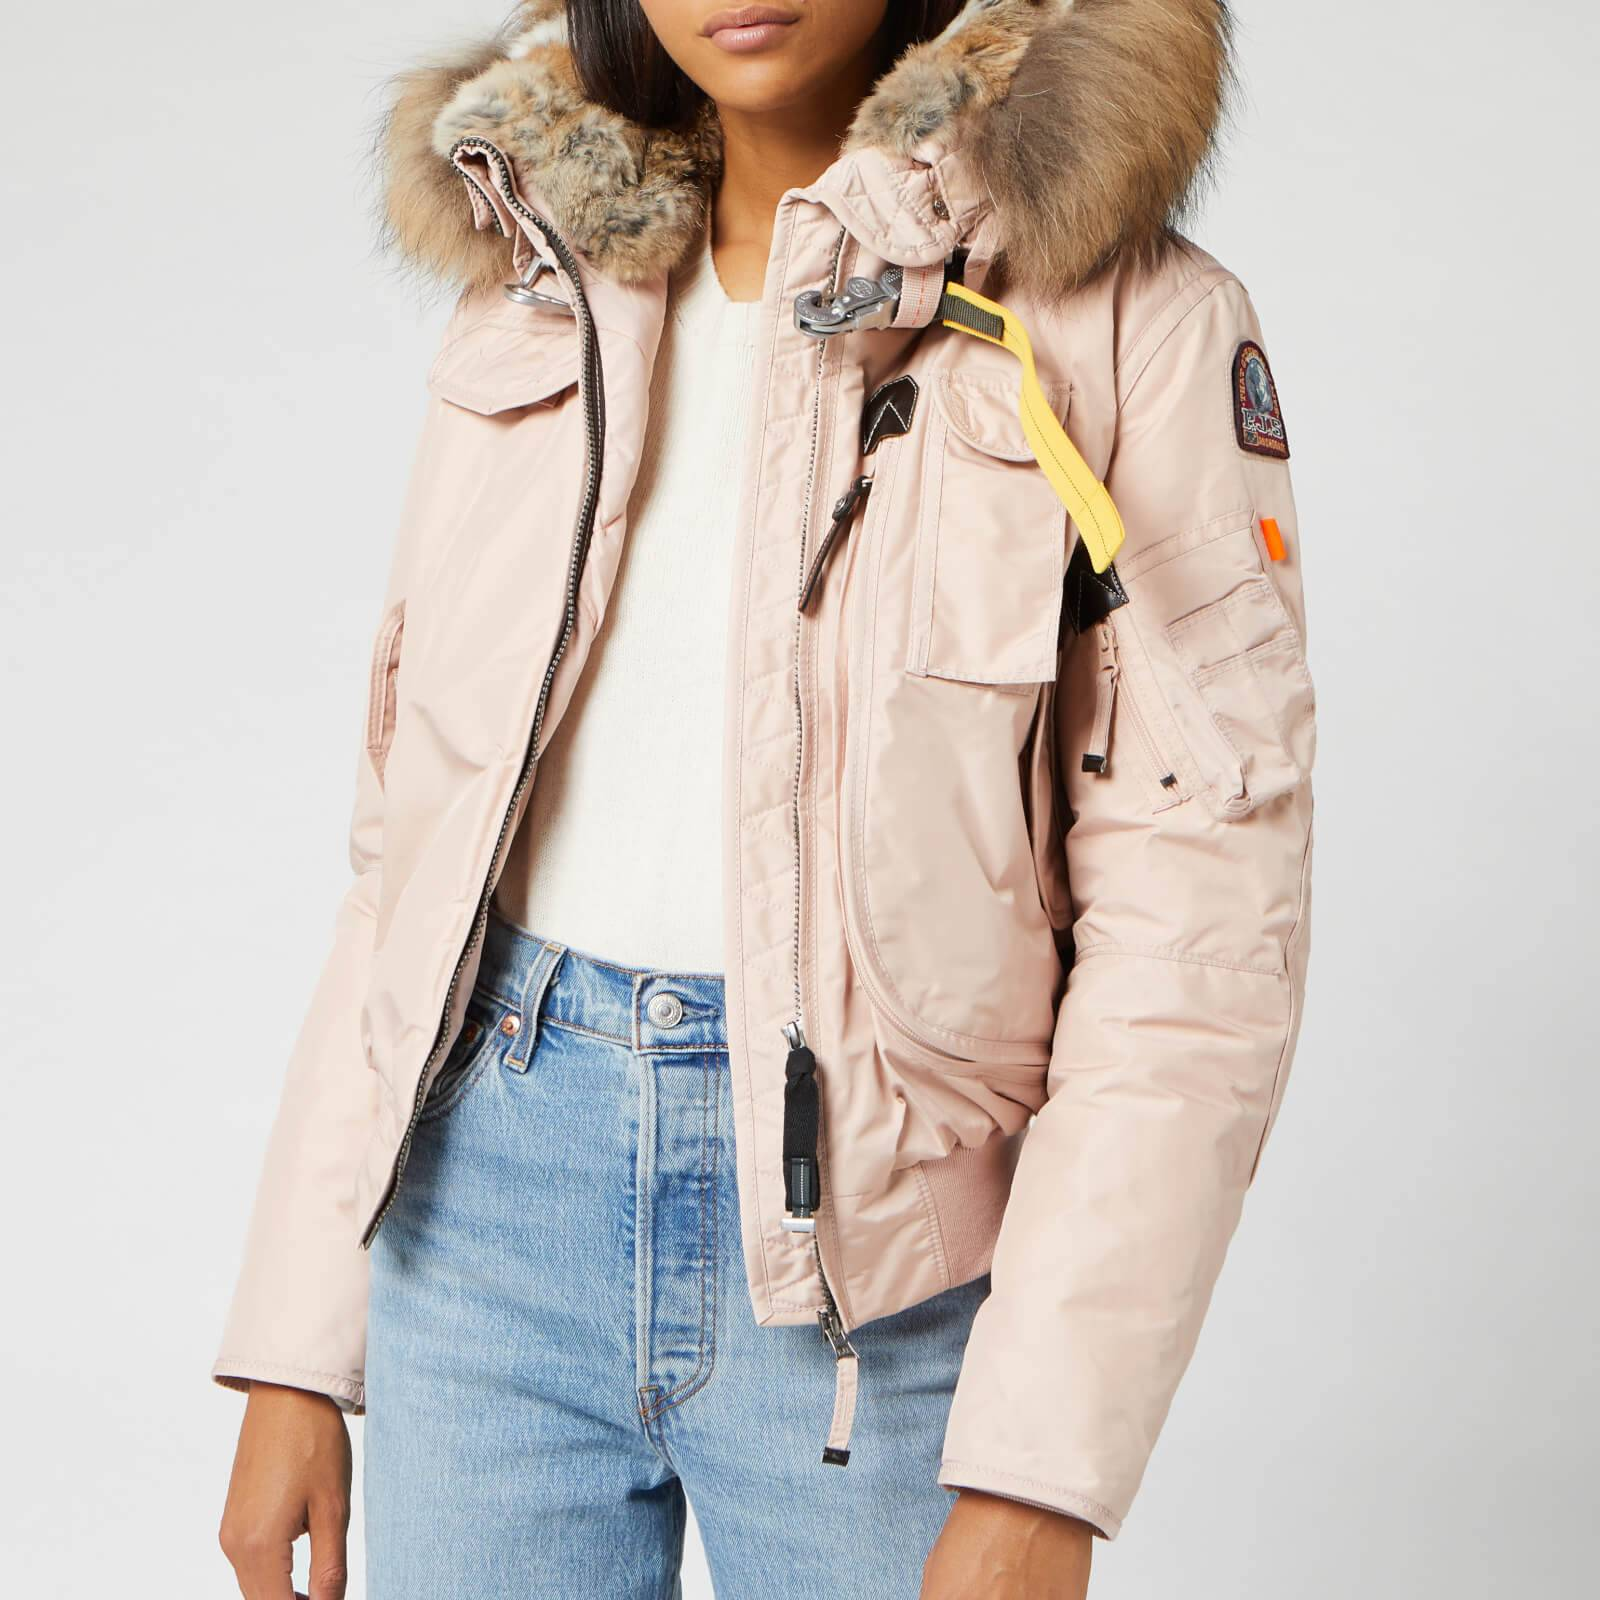 Parajumpers Women's Gobi Masterpiece Coat - Powder Pink - S